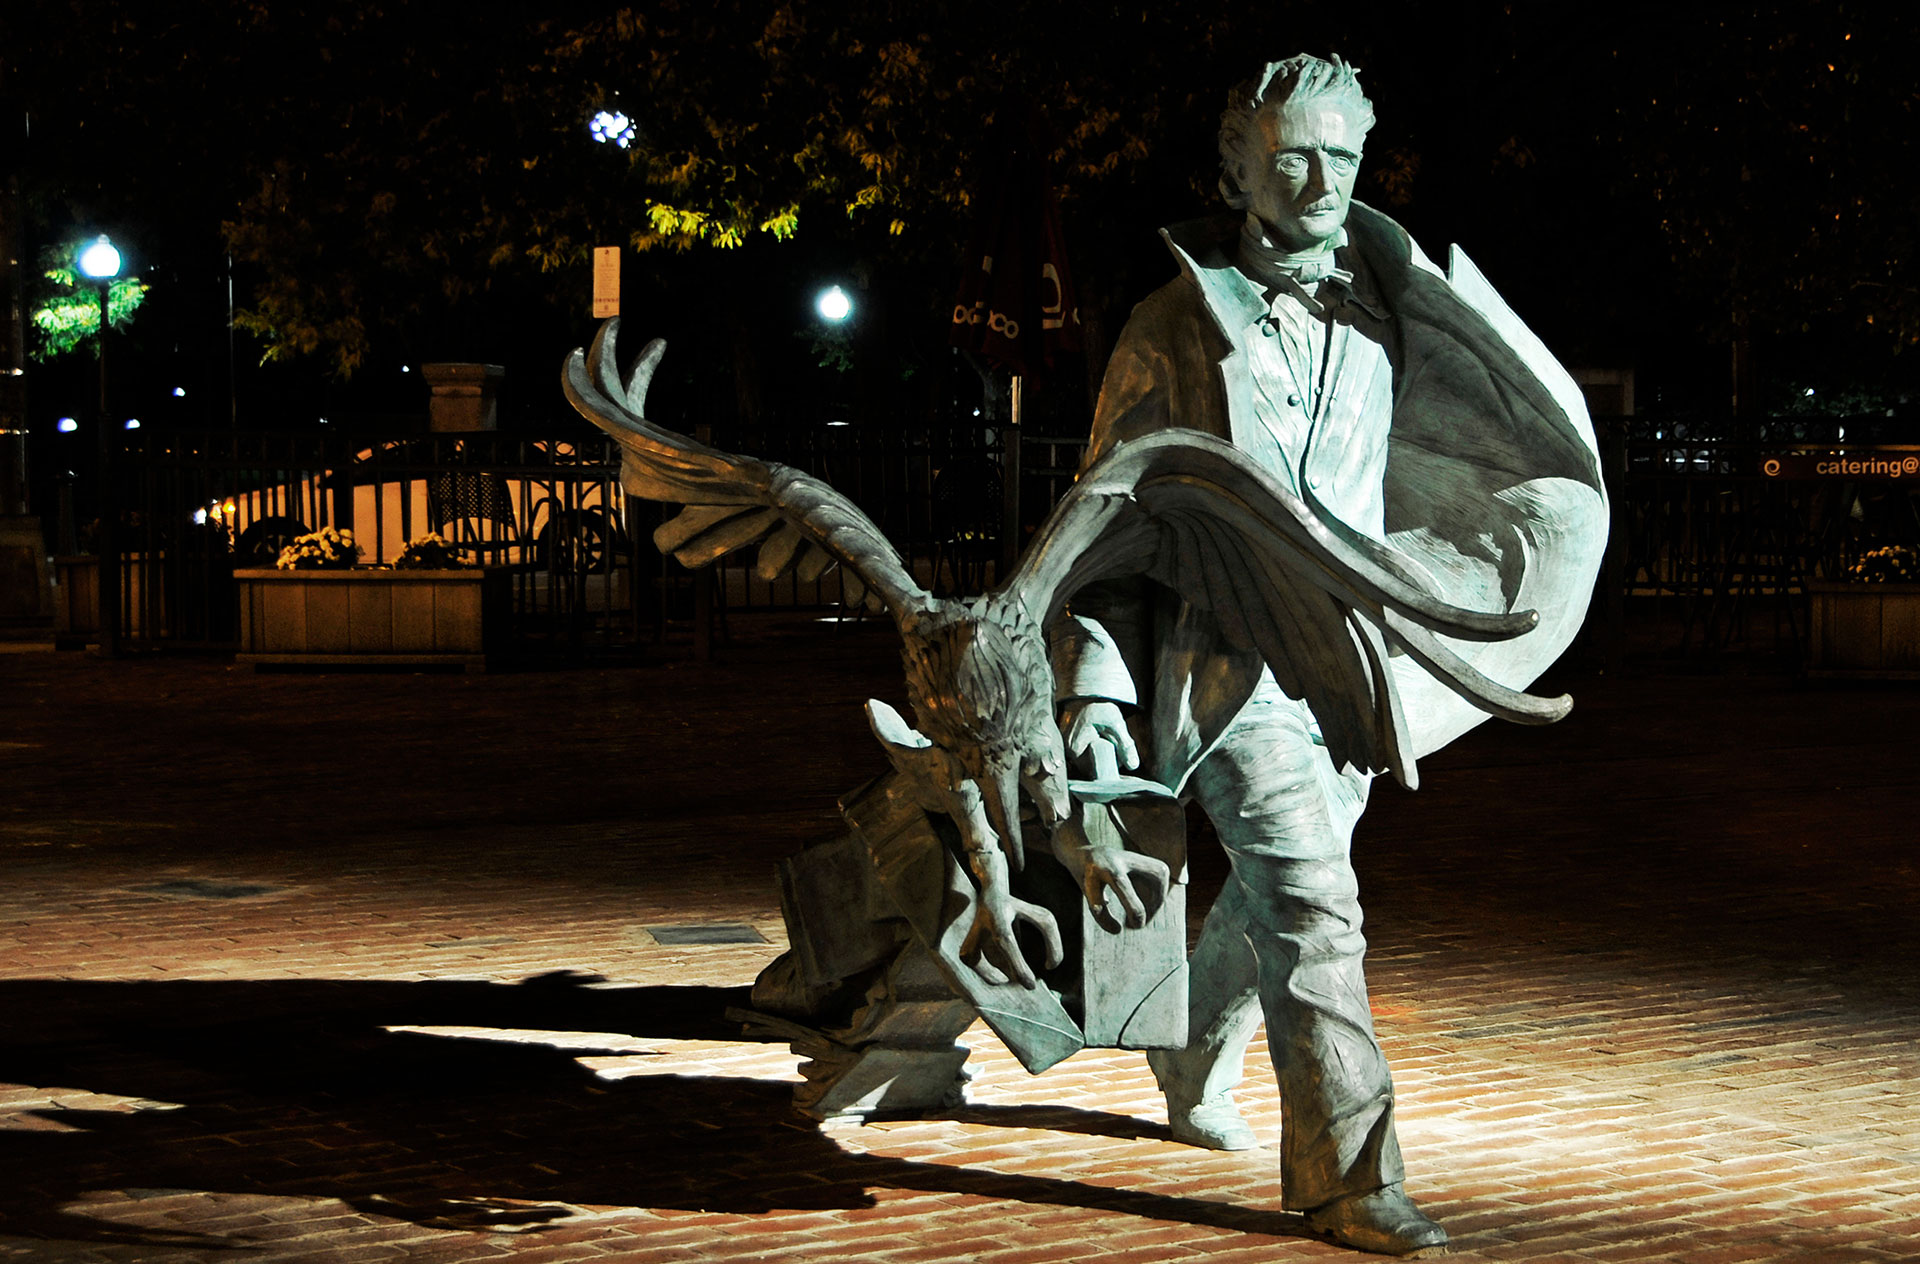 Poe Returning to Boston Statue